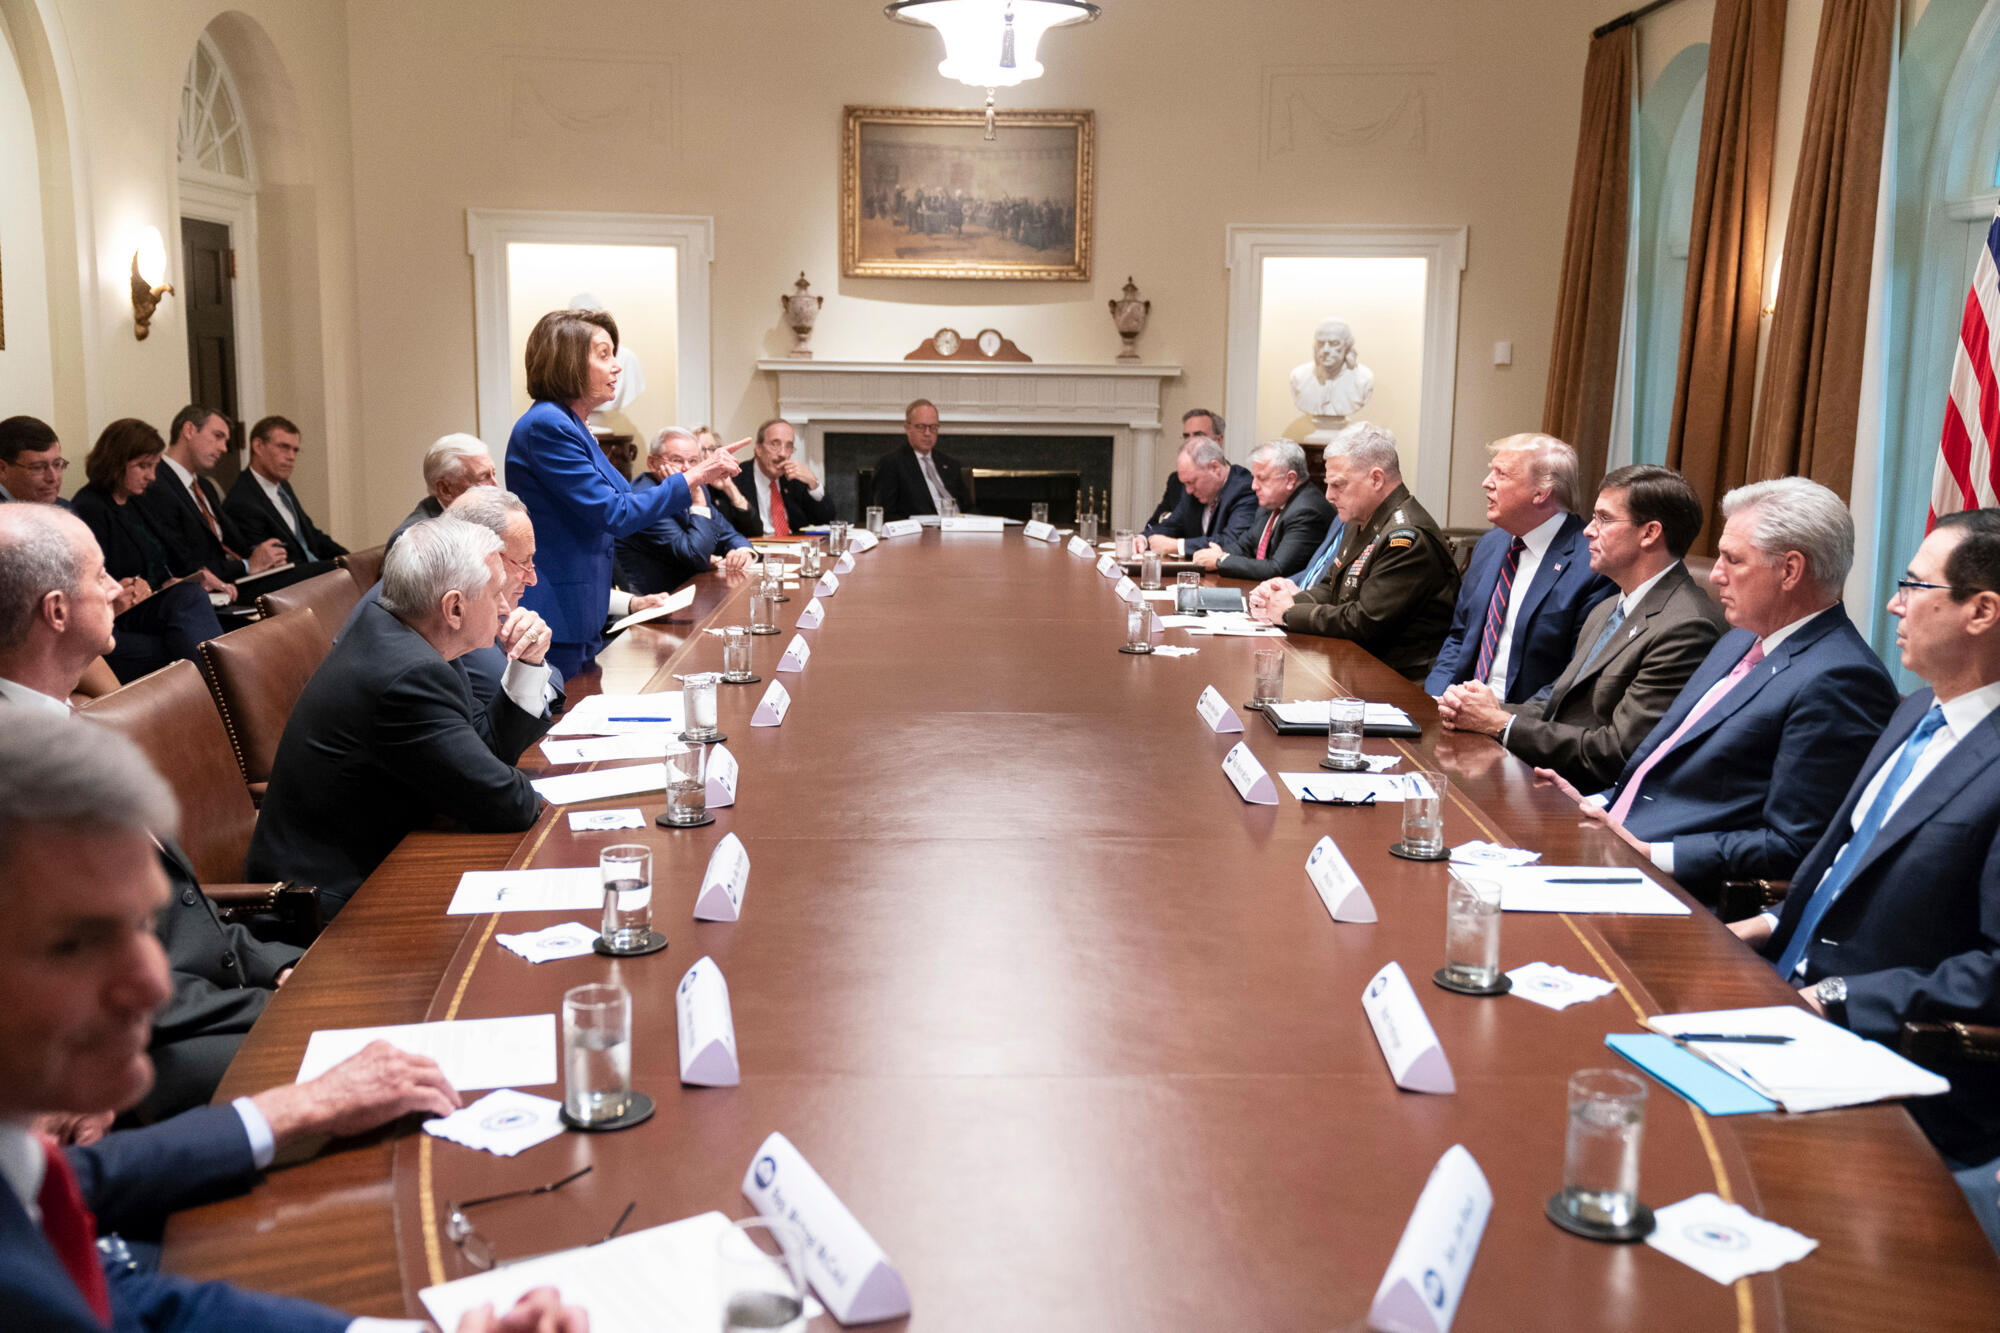 Nancy pelosi in the White House cabinet meeting